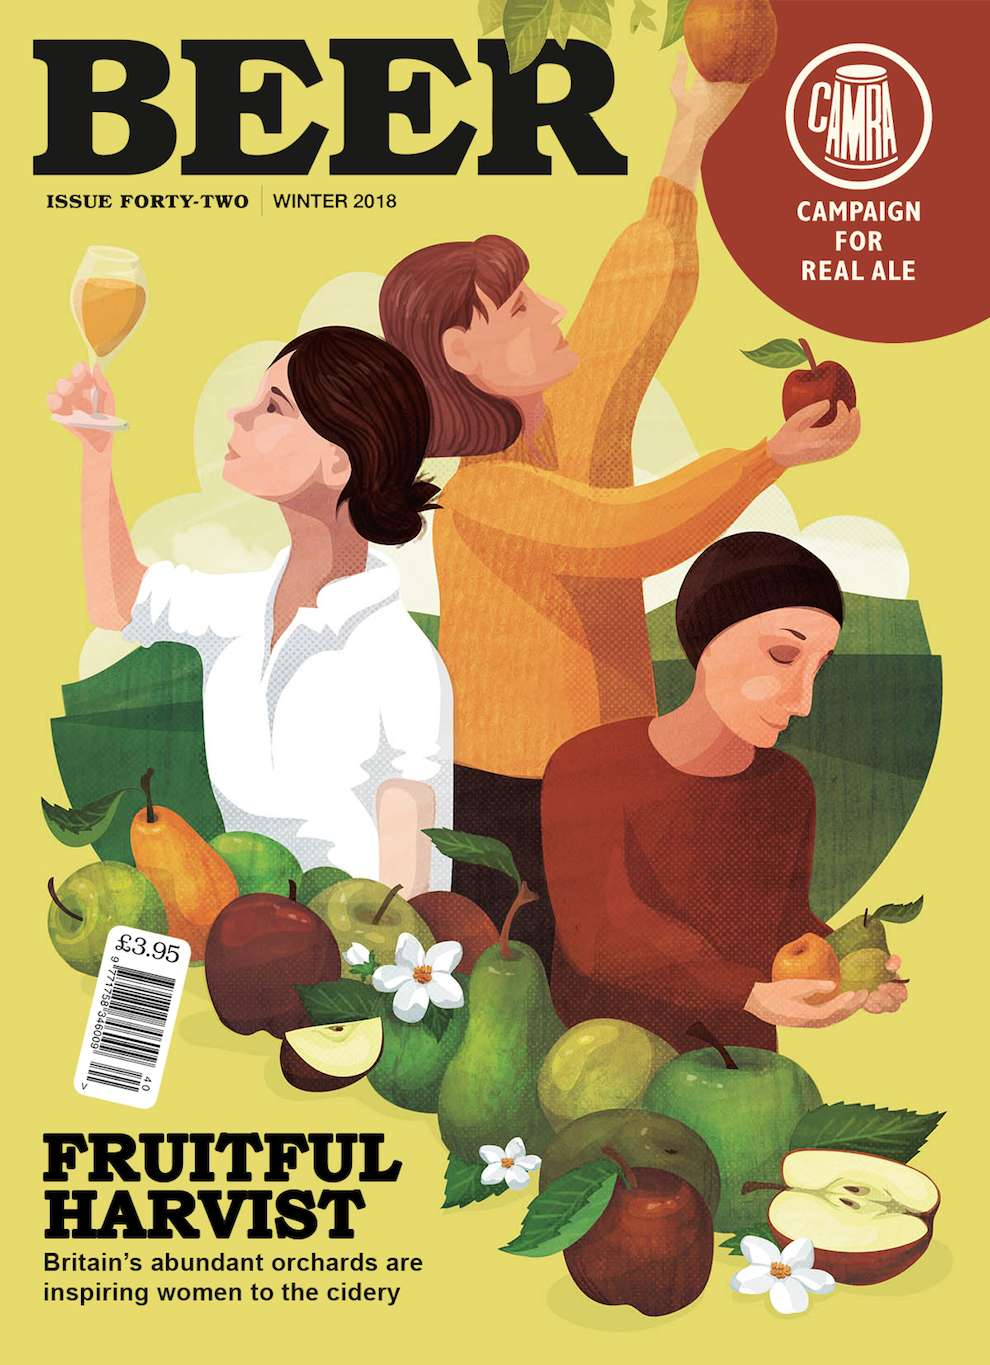 Kerry Hyndman, Digital illustration of a woman picking up fruits for the front cover for beer magazine